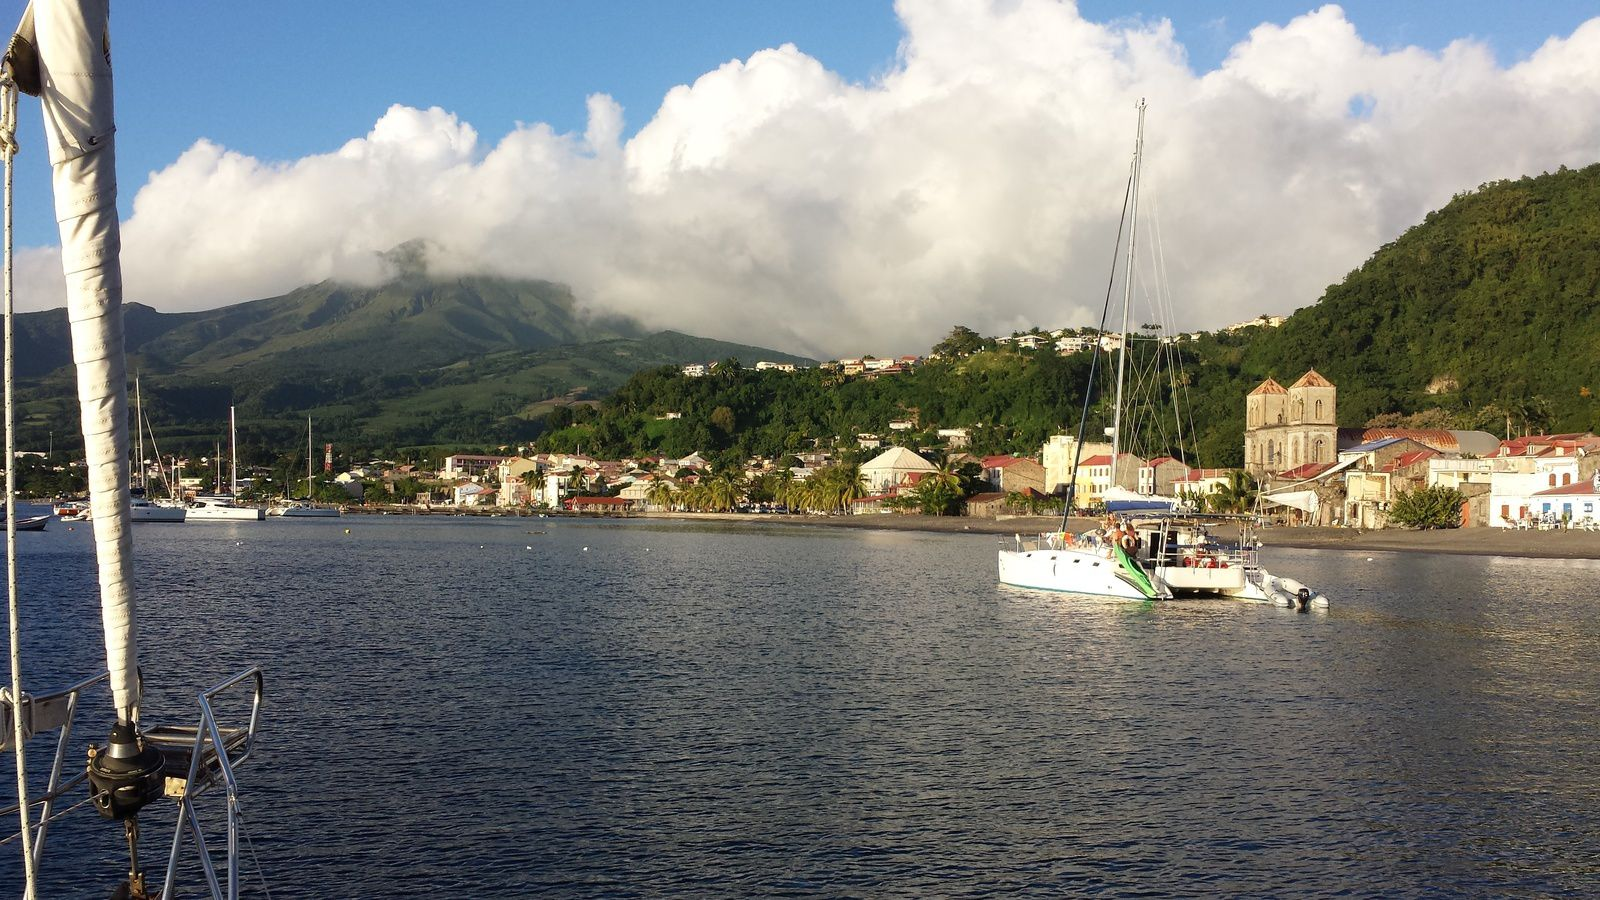 St-Pierre au N-O de la Martinique